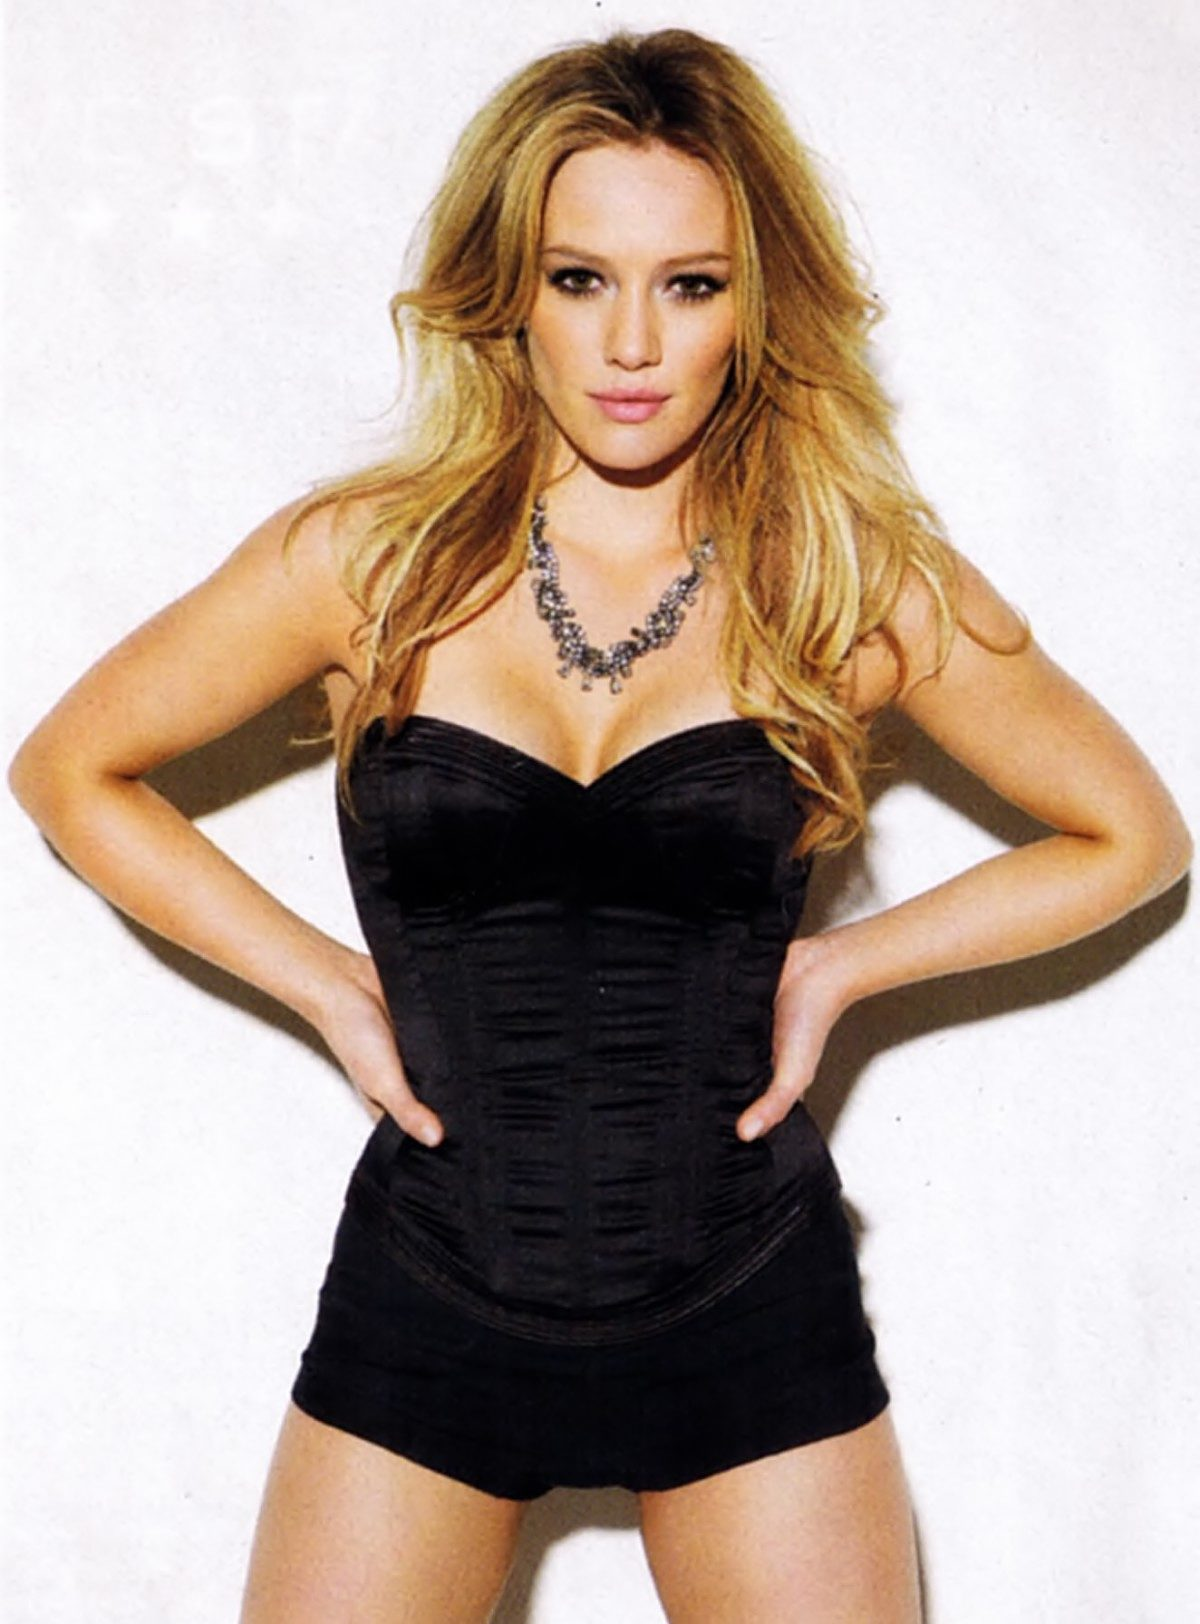 hilary-duff-height-weight-age-bra-size-affairs-body-measurements-3